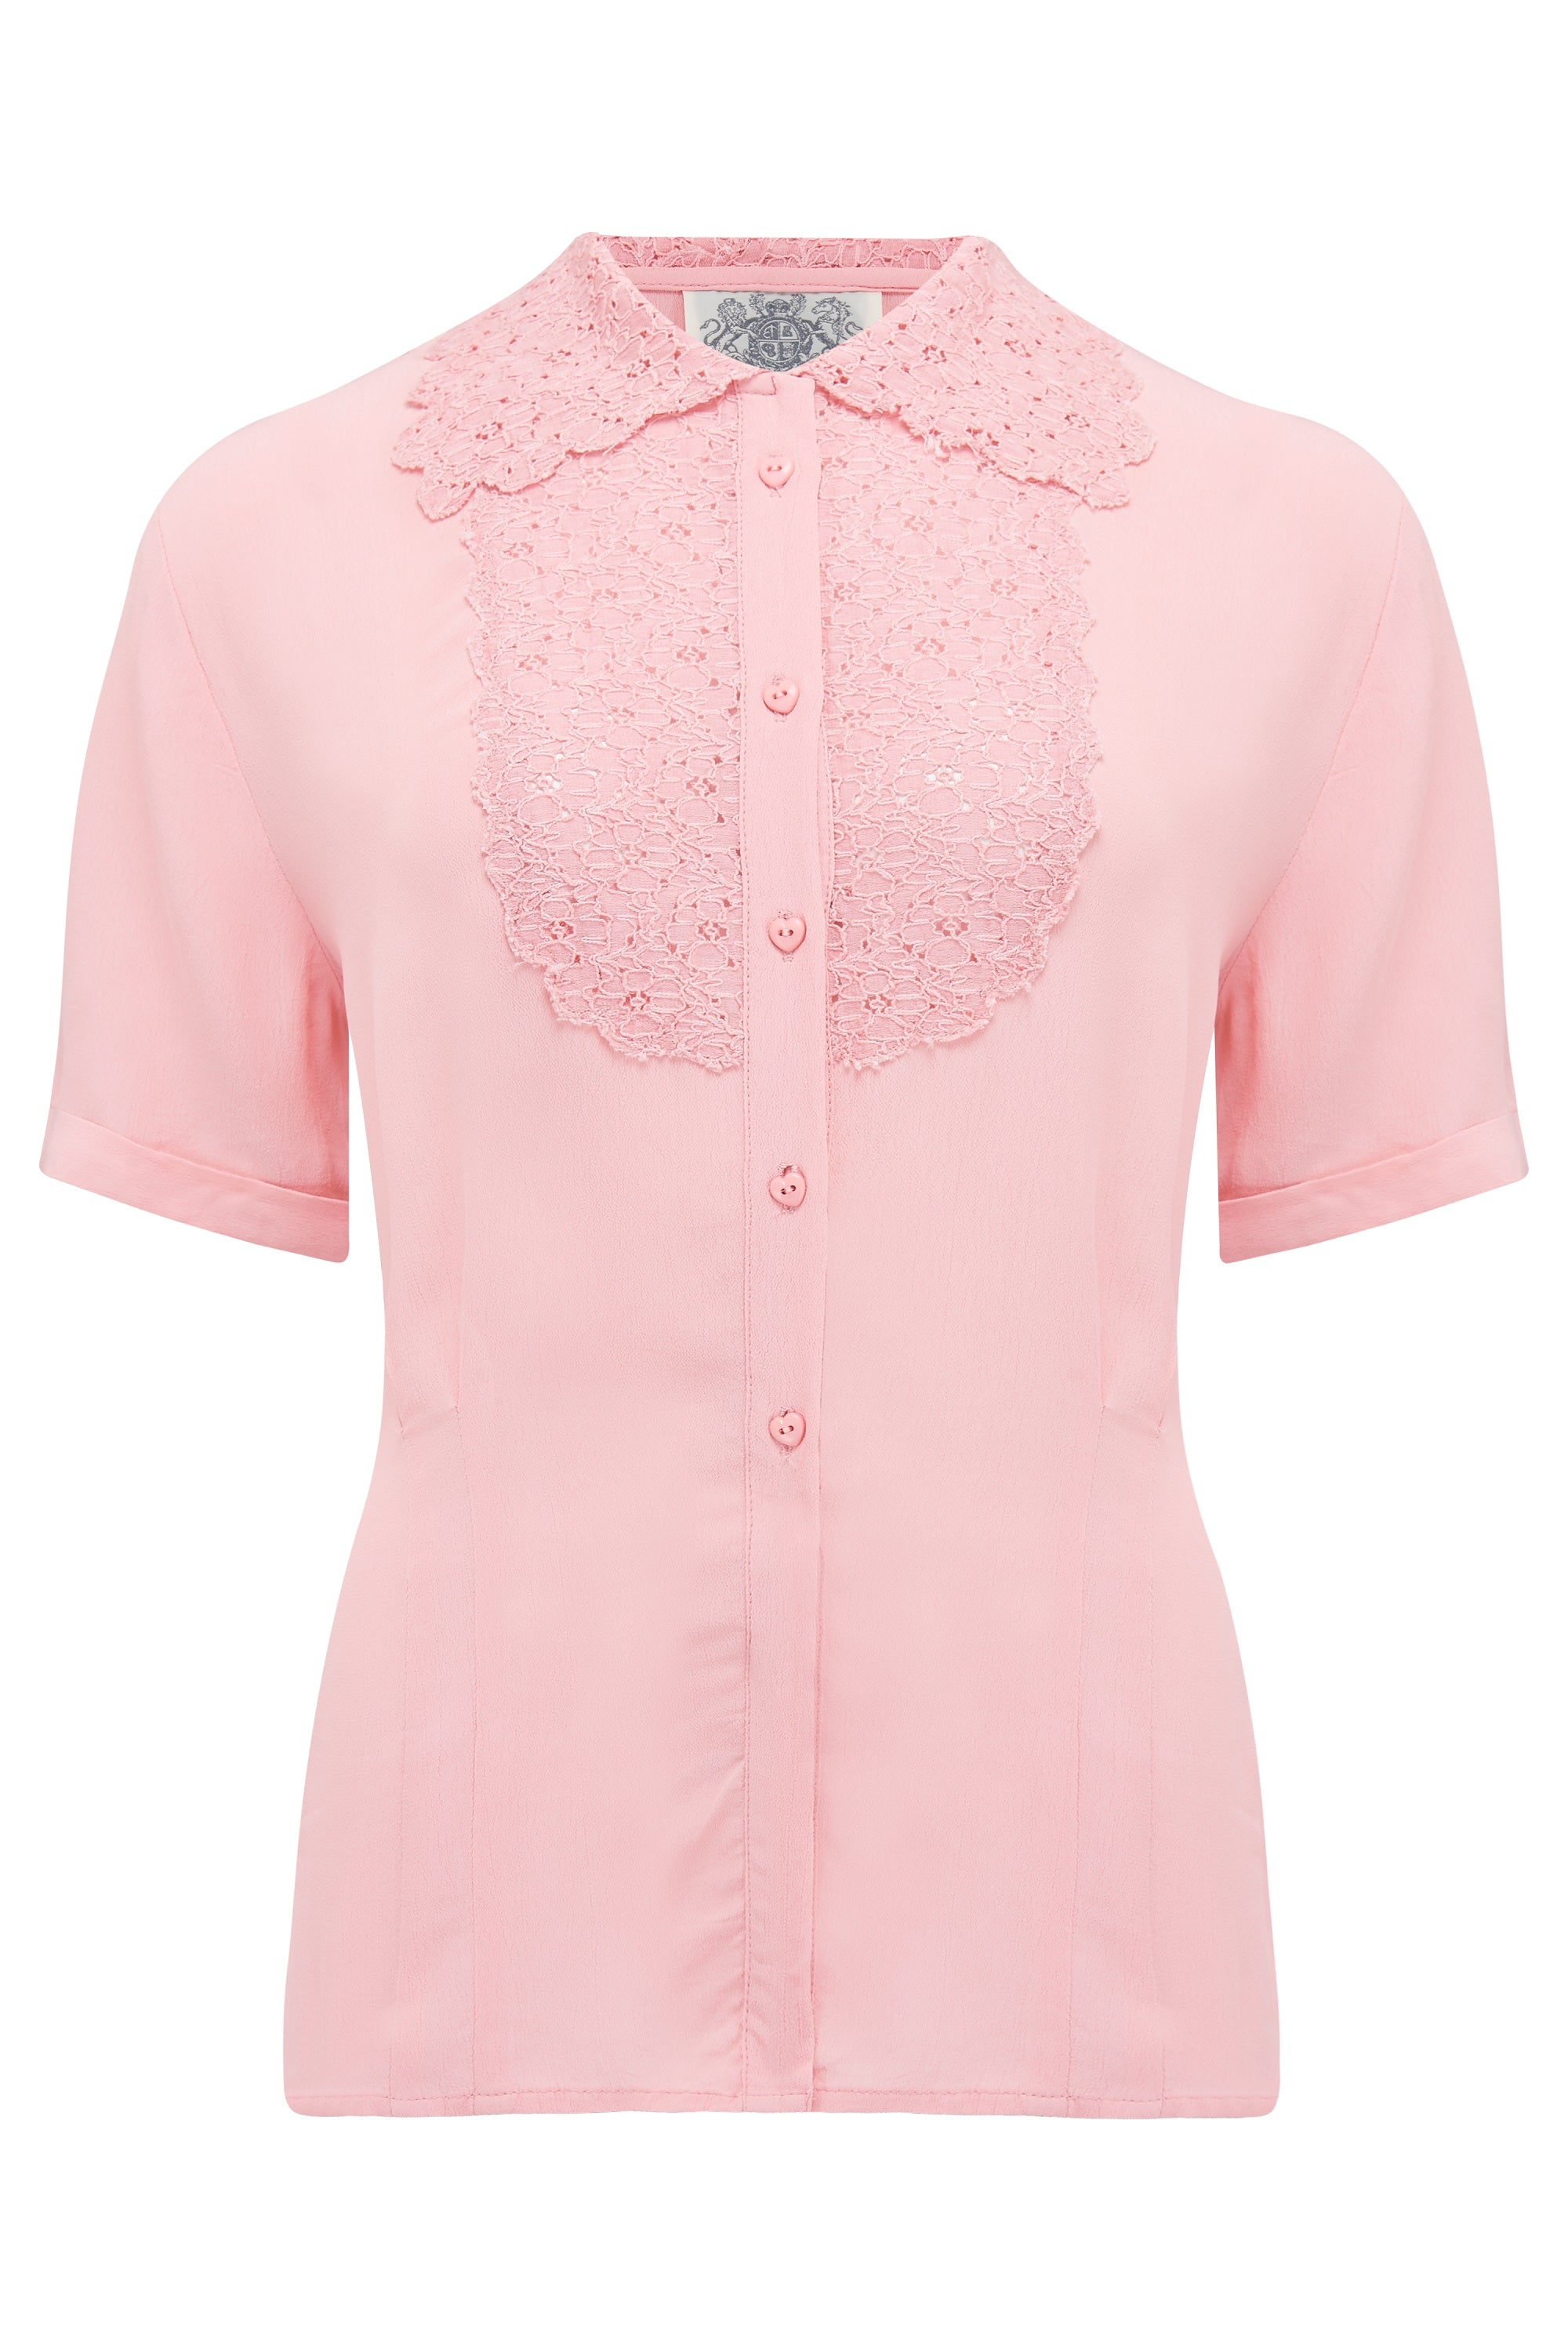 1940s Blouses, Tops, Shirts, Knitwear Lacey Blouse in Blossom Pink  Authentic  Classic 1940s True Vintage Style £39.00 AT vintagedancer.com